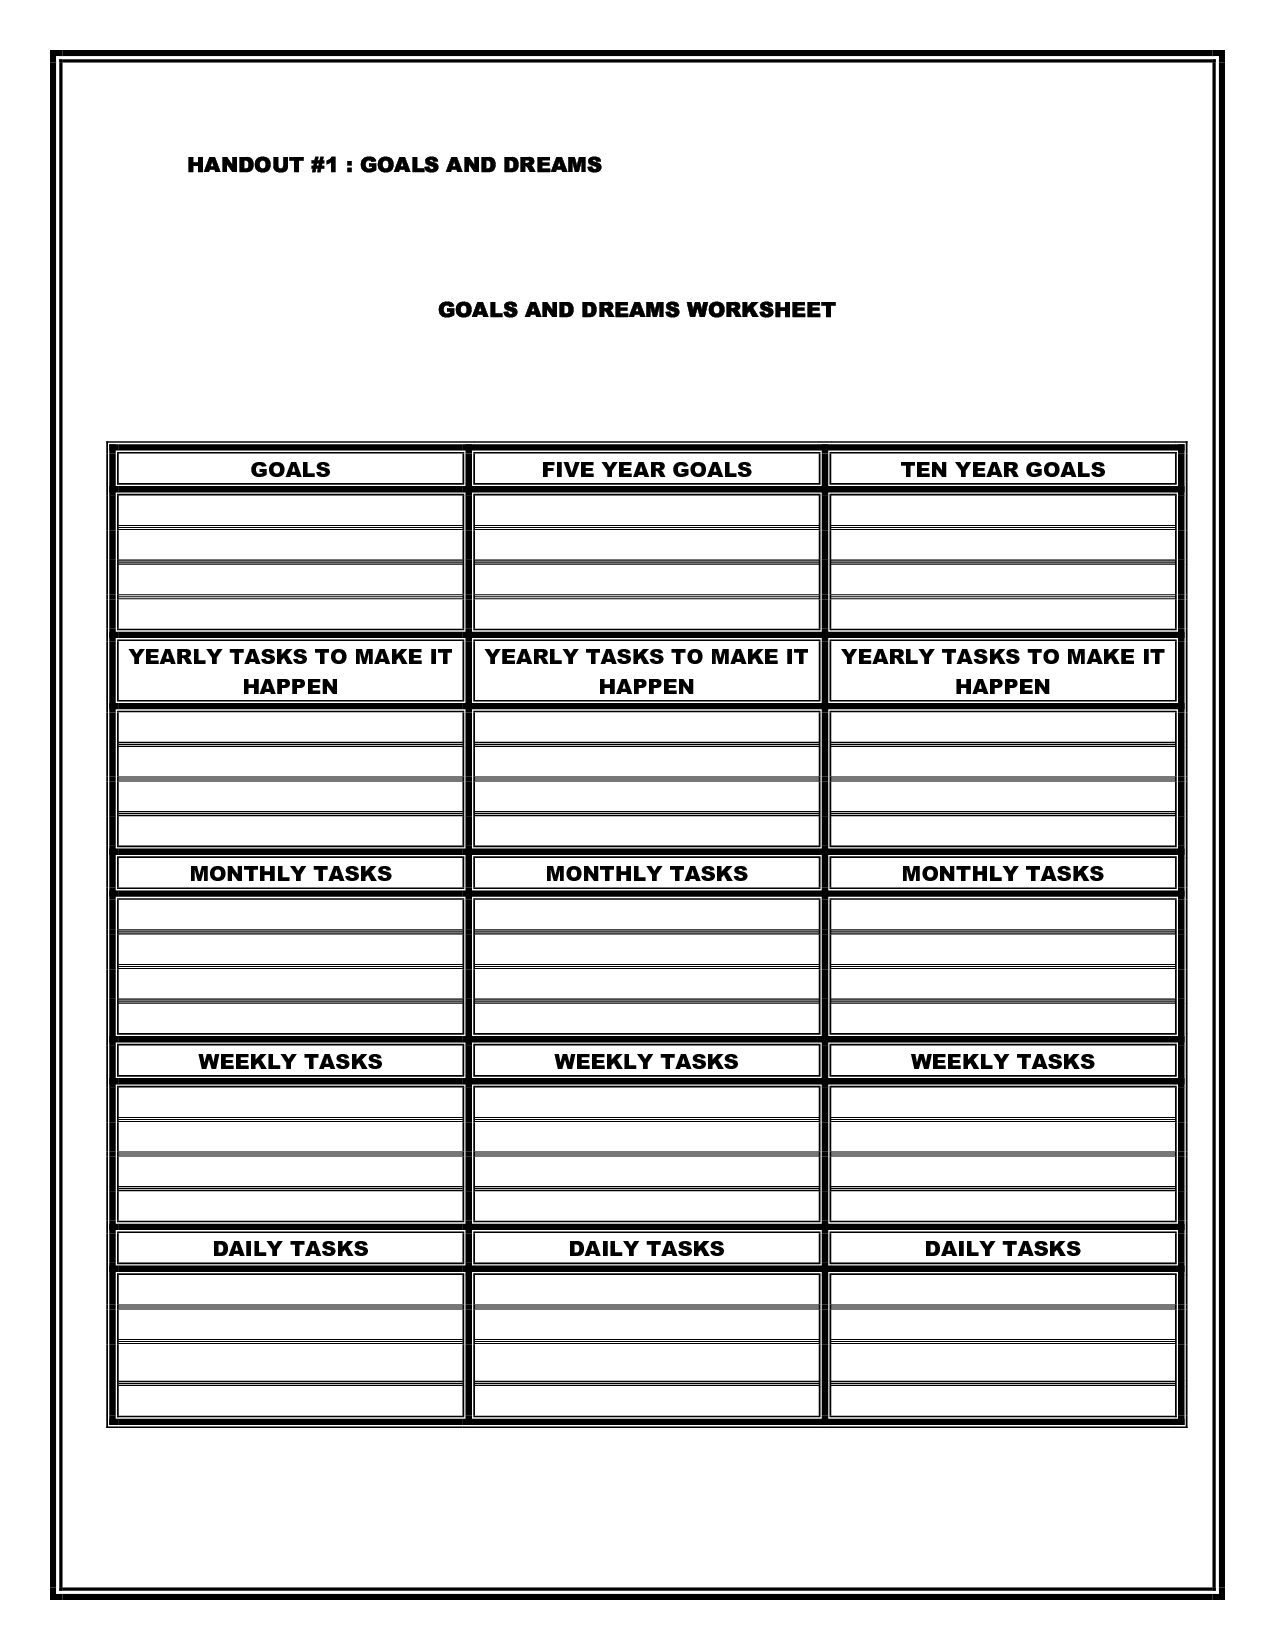 worksheet Career Path Worksheet healthy boundaries worksheet bing images therapy pinterest goals worksheettherapy worksheetscareer pathhealthy